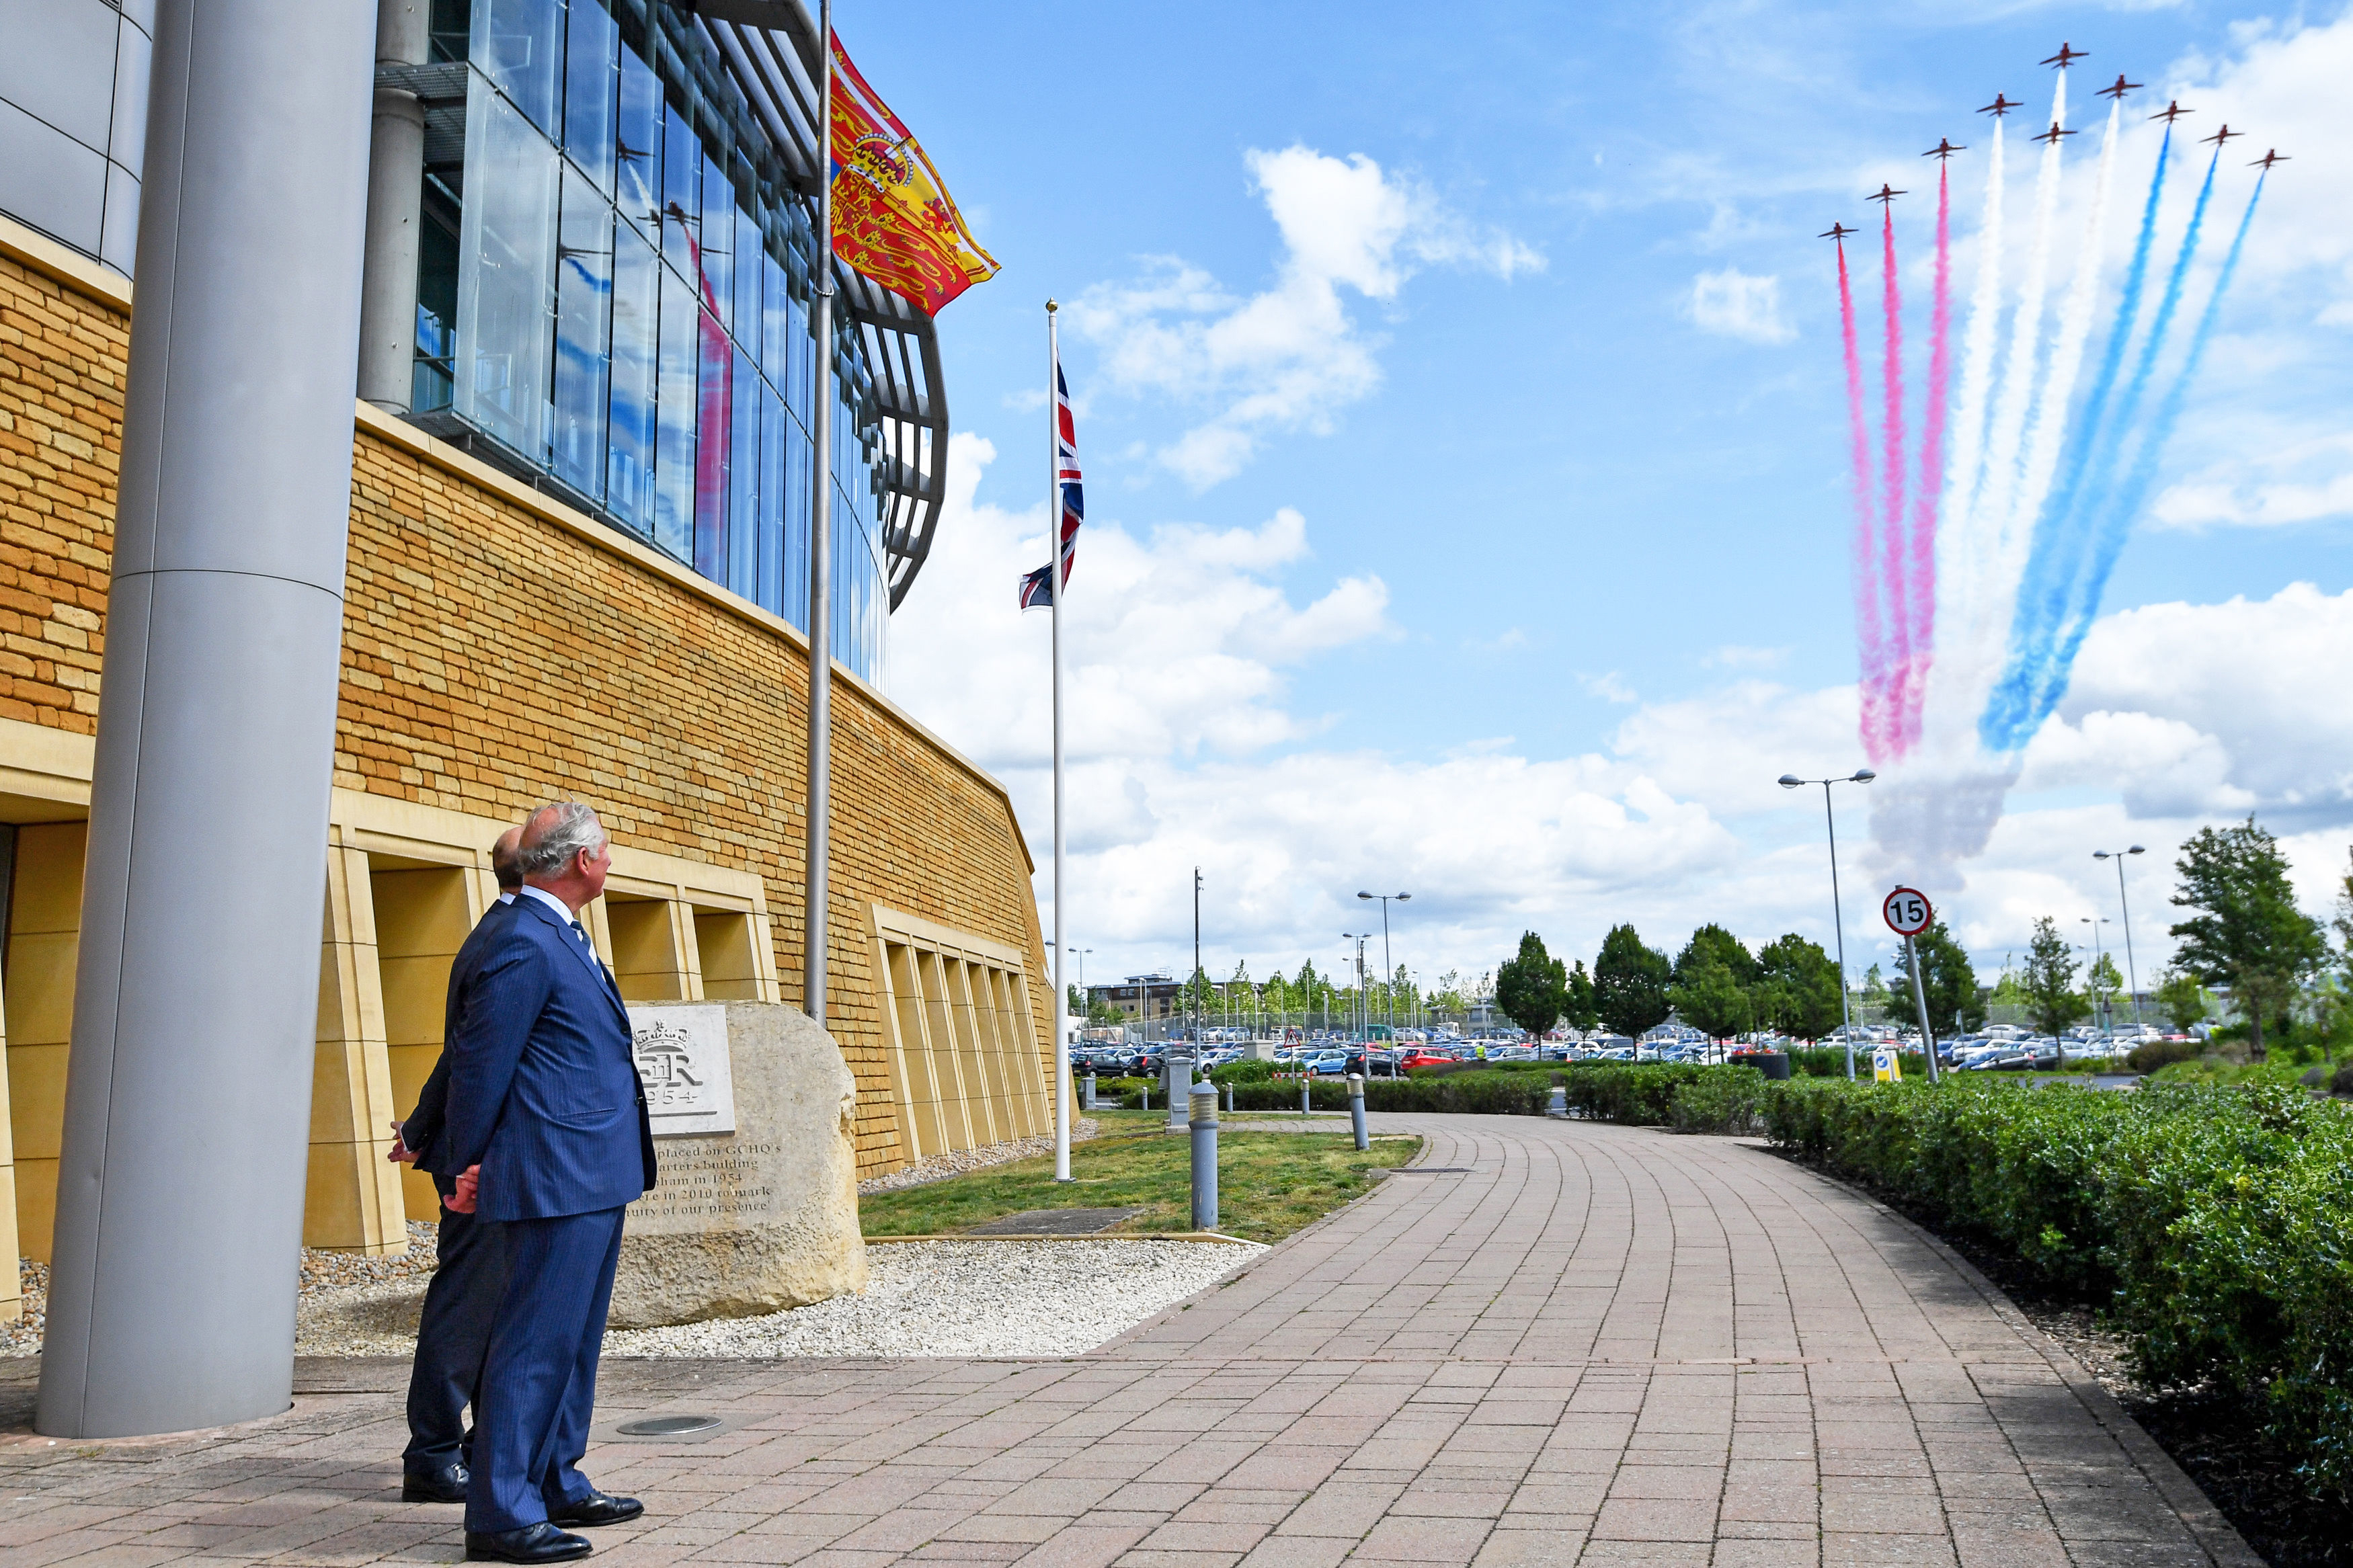 Charles watches a Red Arrows flypast during a visit to the Government Communications Headquarters